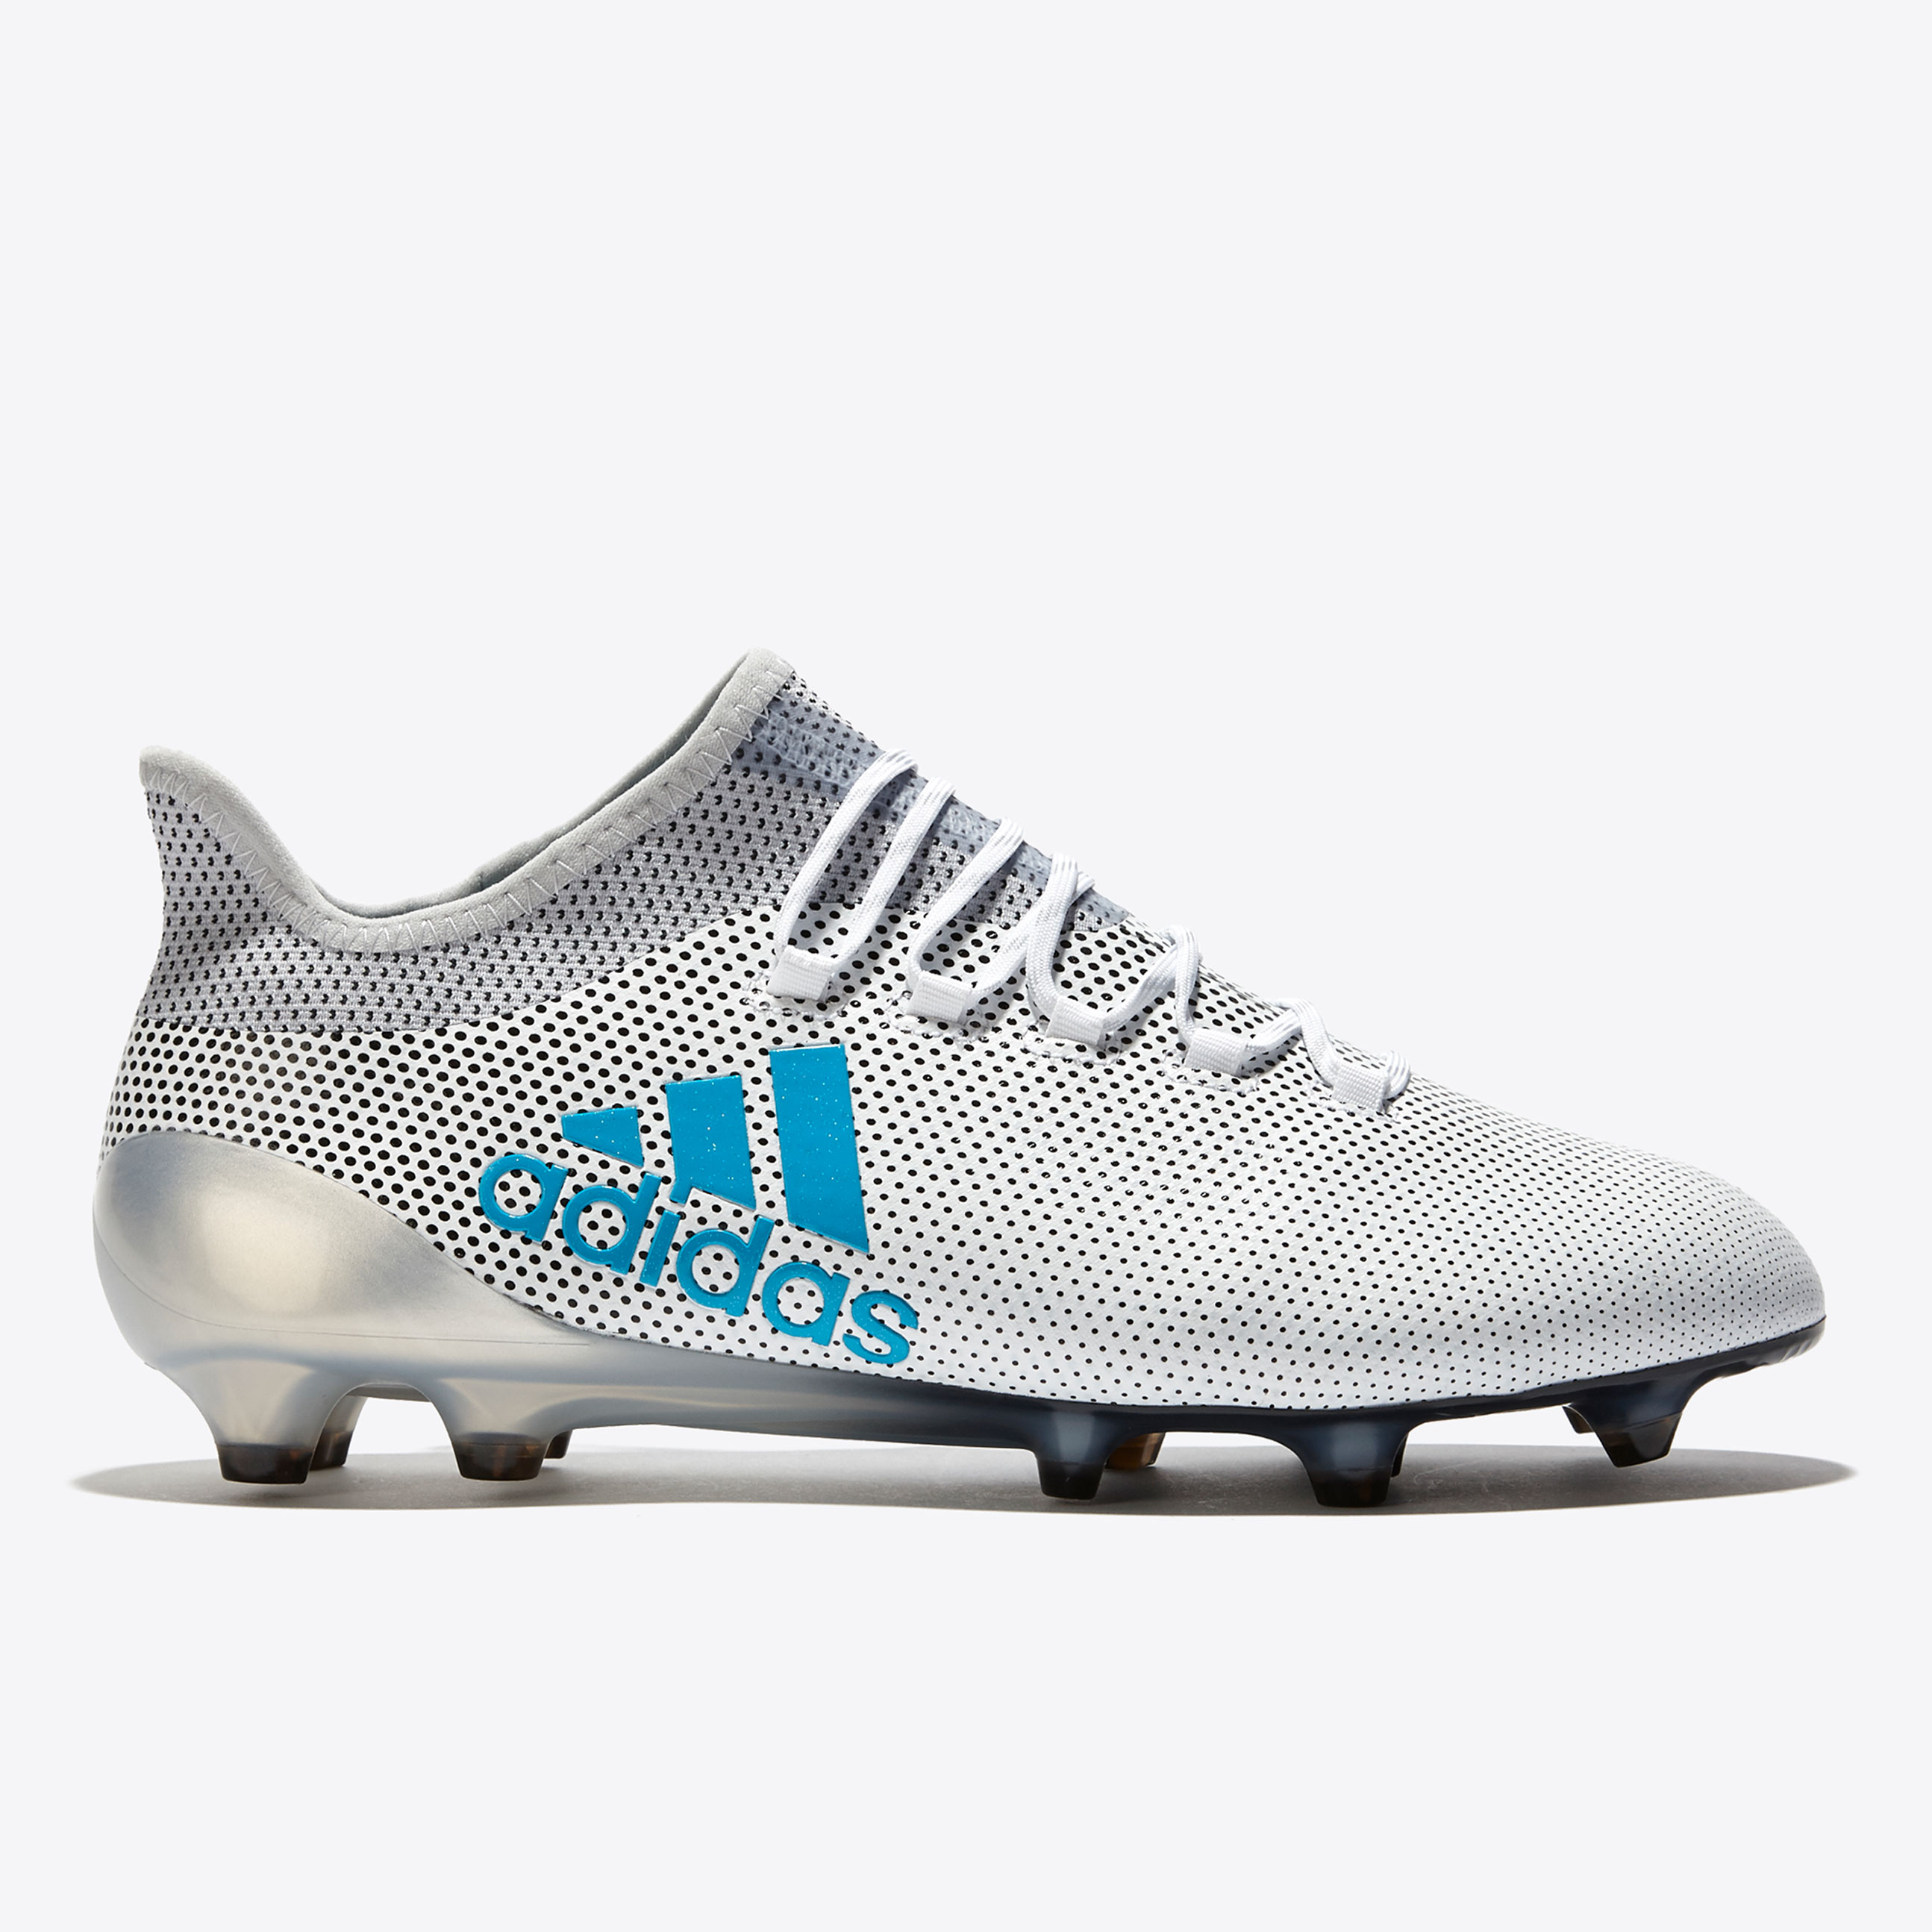 adidas X 17.1 Firm Ground Football Boots - White/Energy Blue/Clear Gre